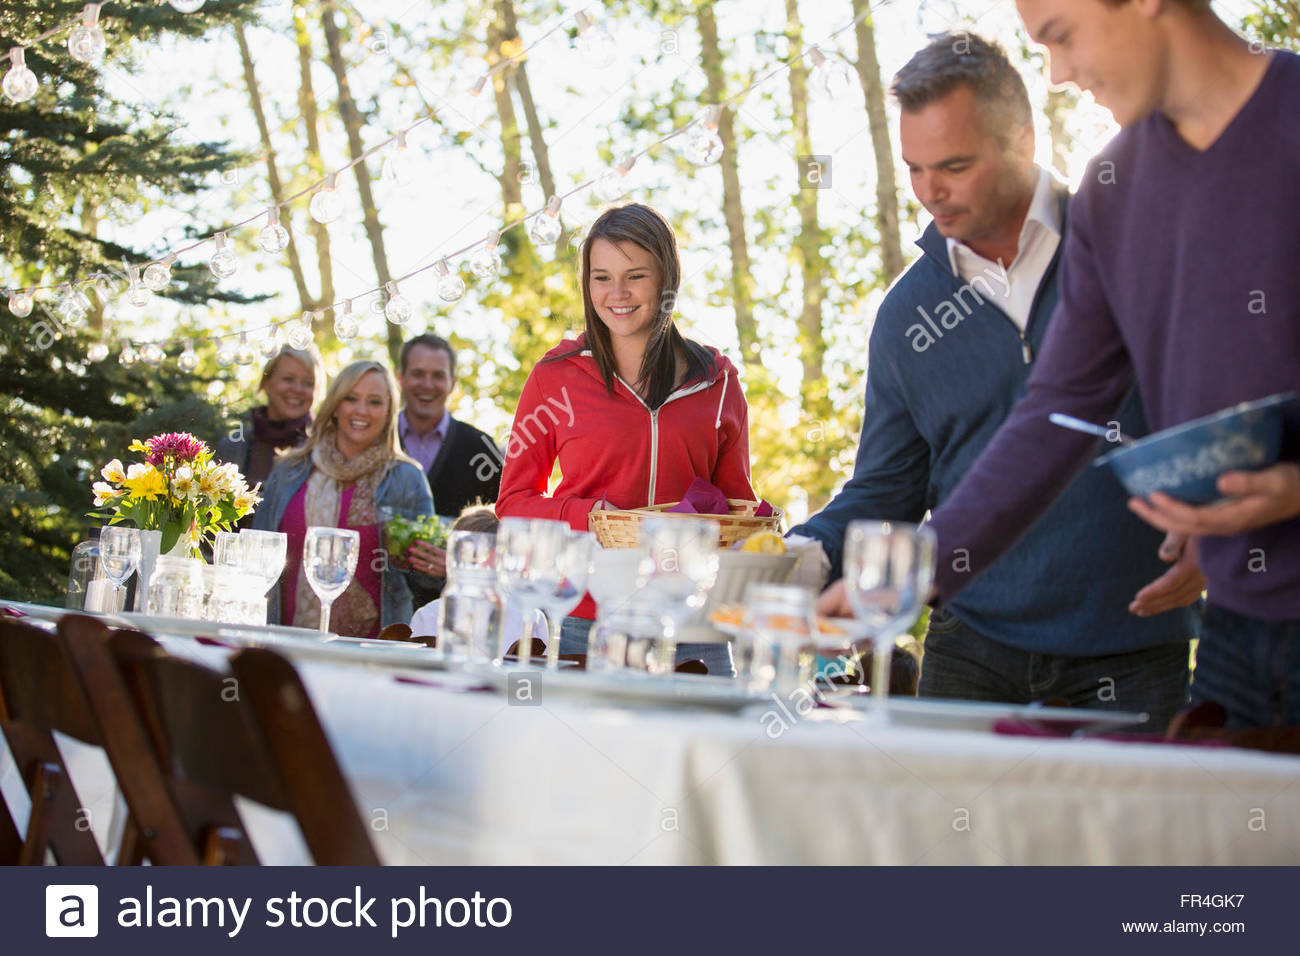 Family members lined up for buffet dinner outdoors. - Stock Image